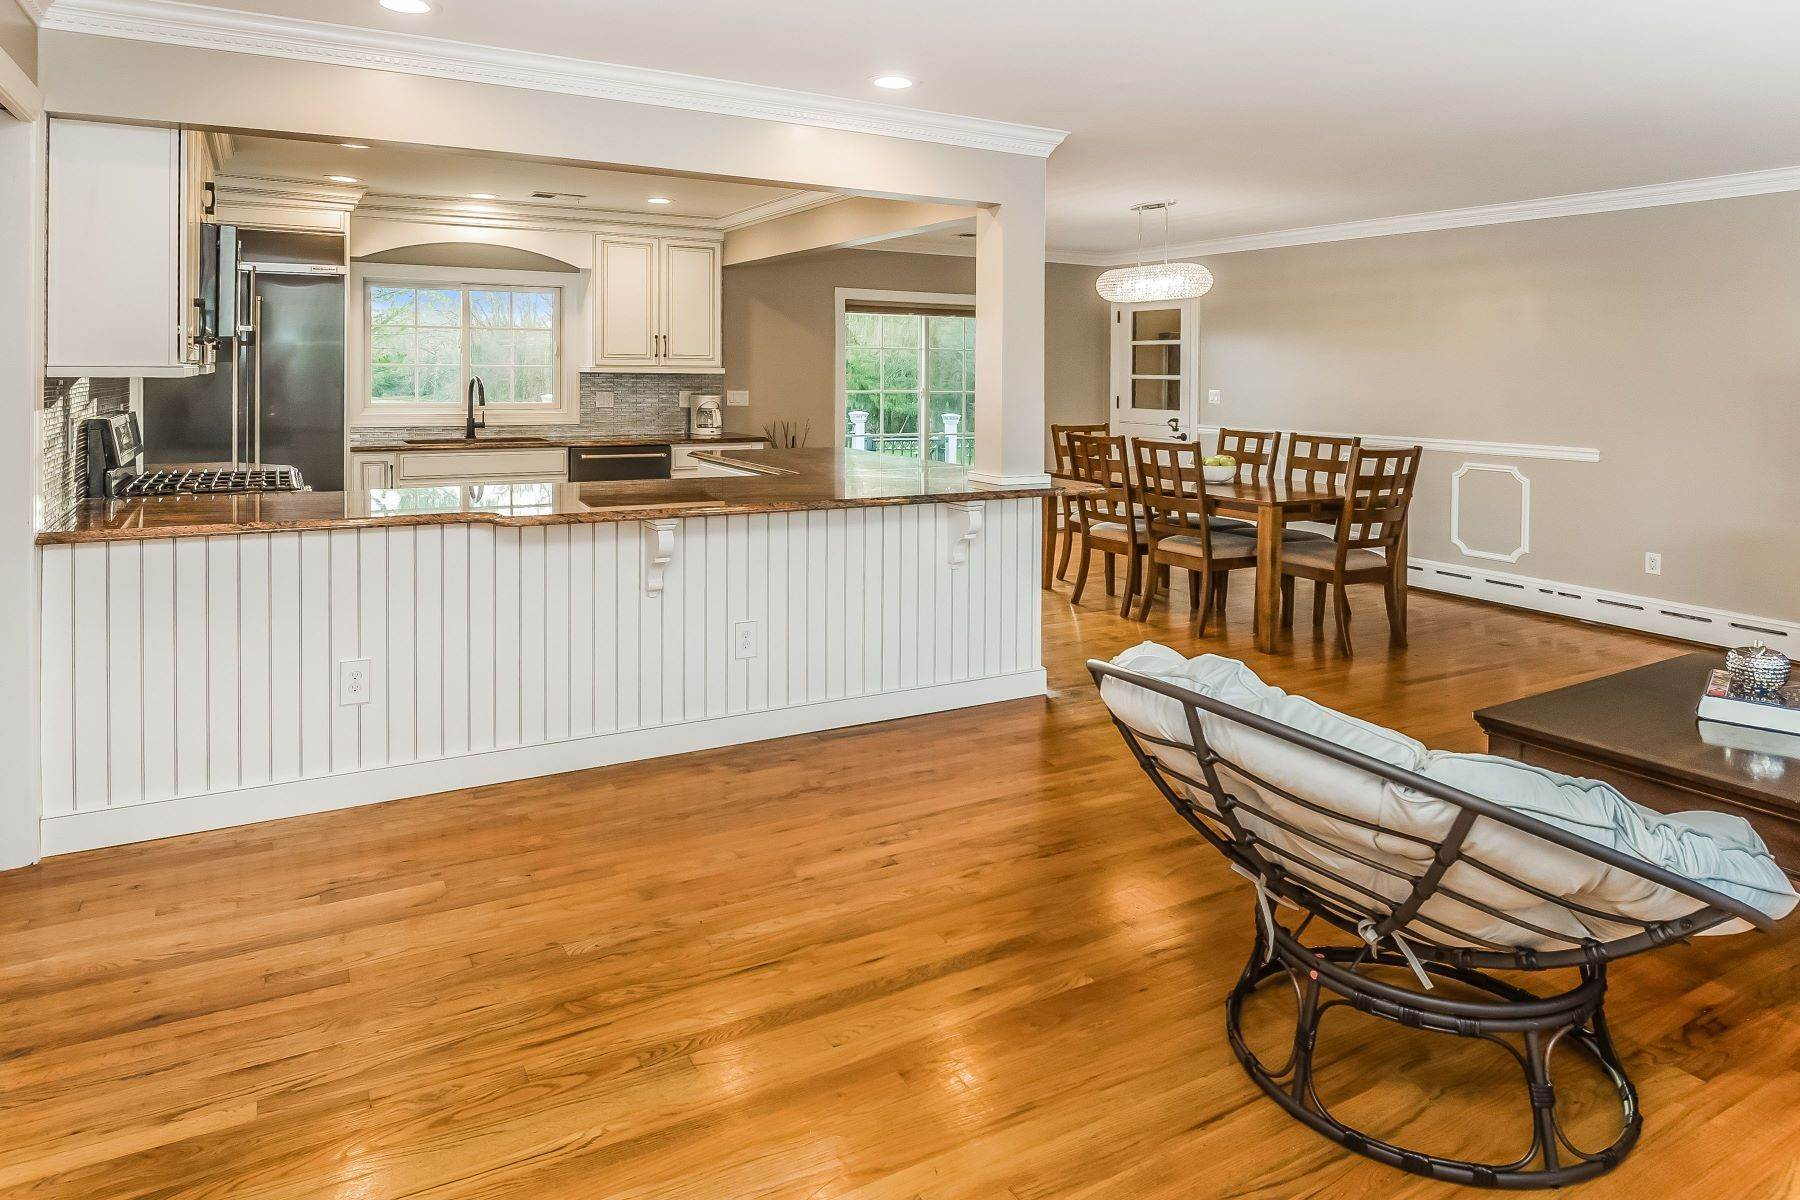 3. Single Family Homes for Sale at Multi-Generational Living At Its Best 427 Belle Mead Griggstown Road, Belle Mead, New Jersey 08502 United States